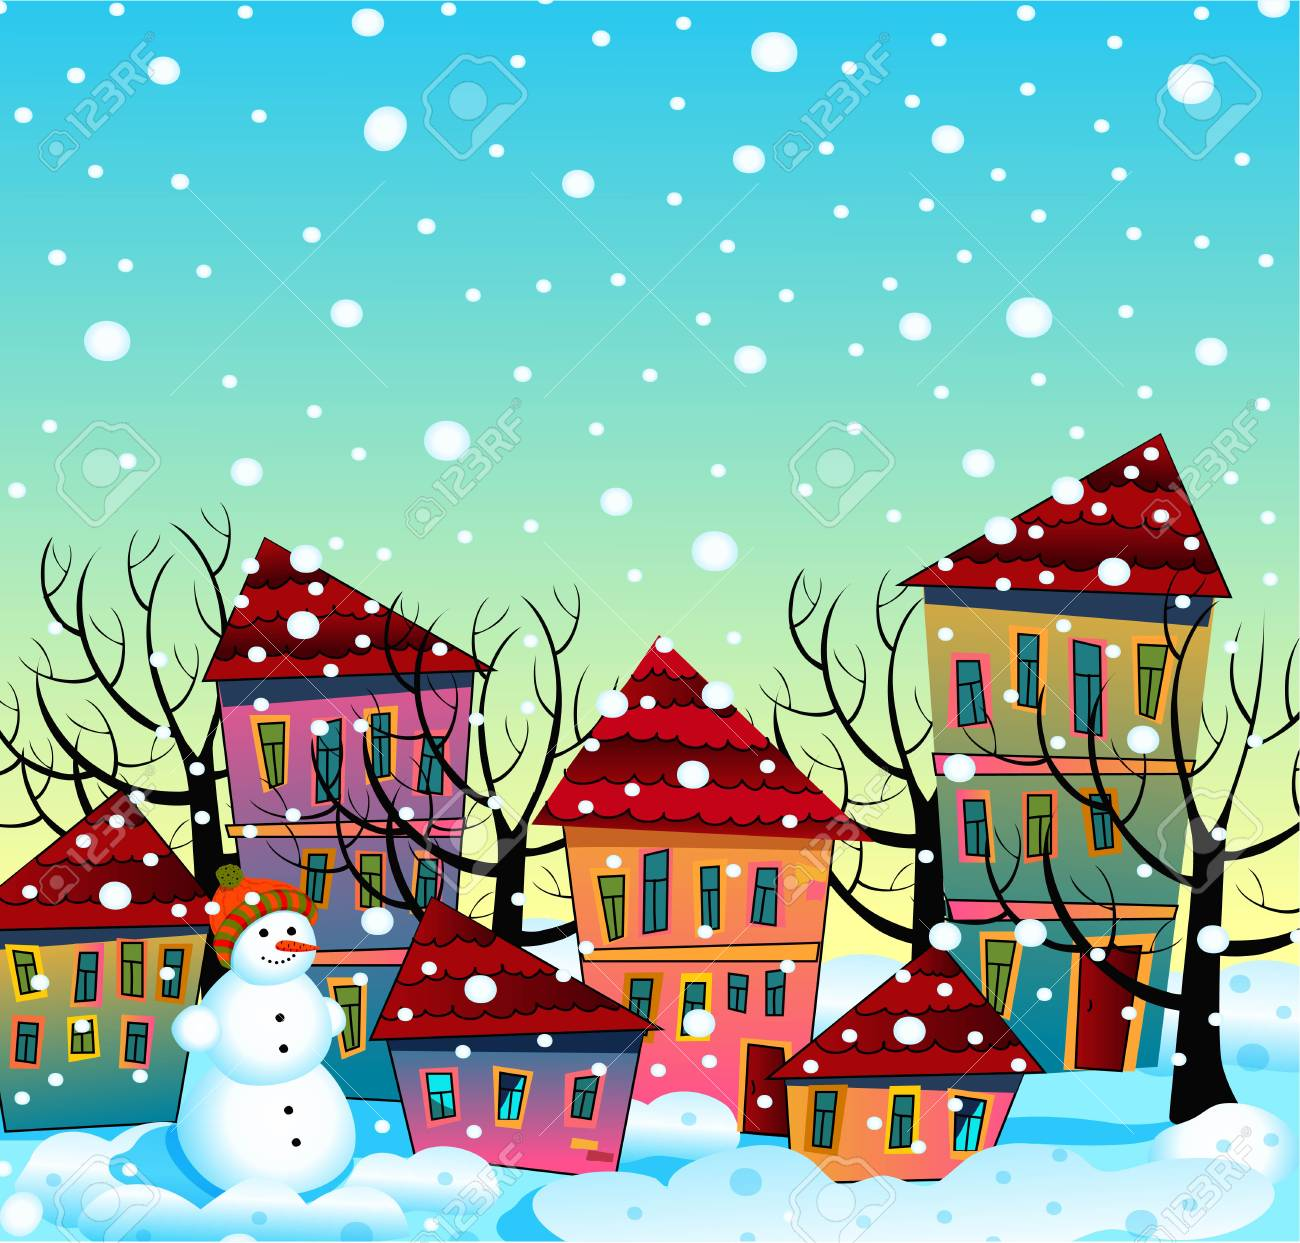 Christmas Background Clipart.Vector Christmas Background Snow Covered Town